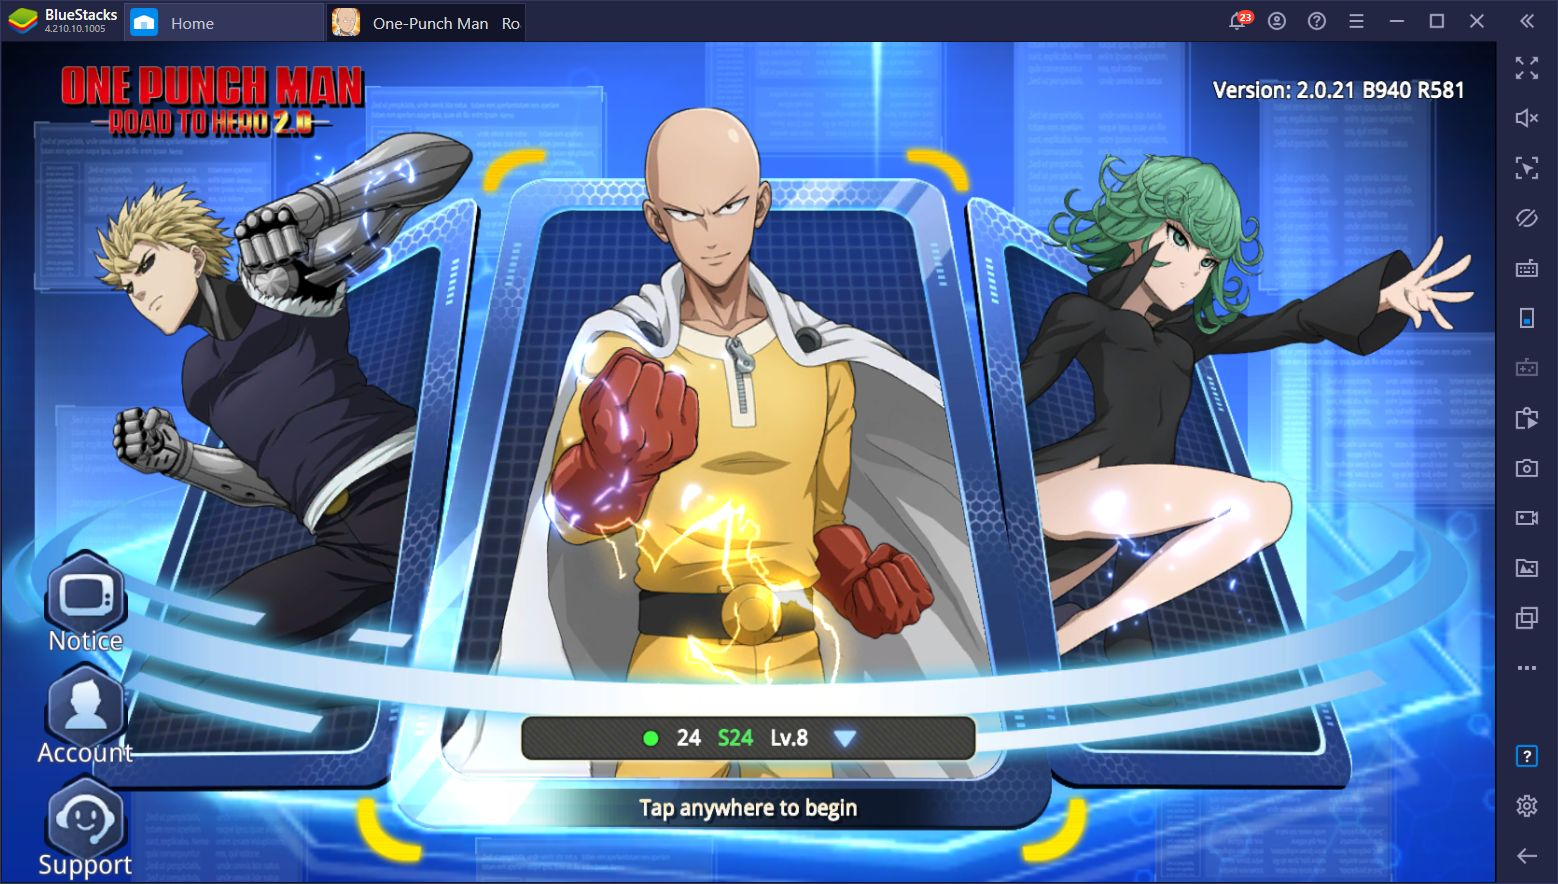 How to Install and Play One Punch Man: Road to Hero 2.0 on PC With BlueStacks